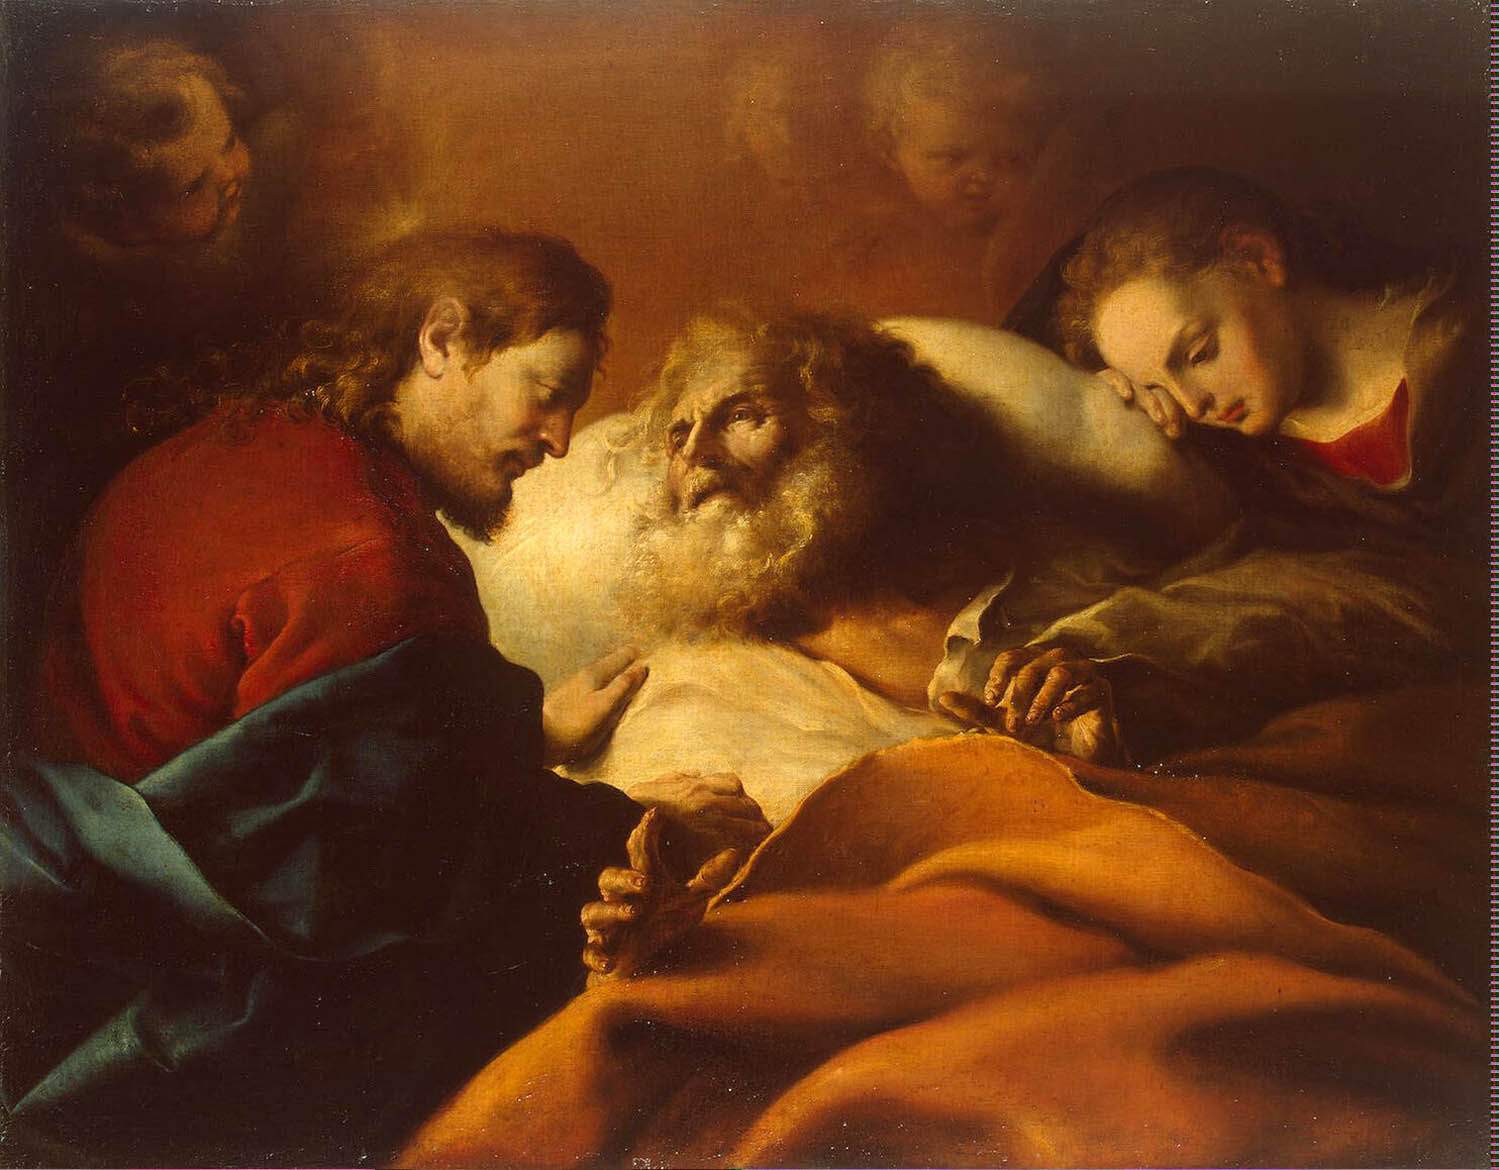 Cano Alonso - Death of St Joseph